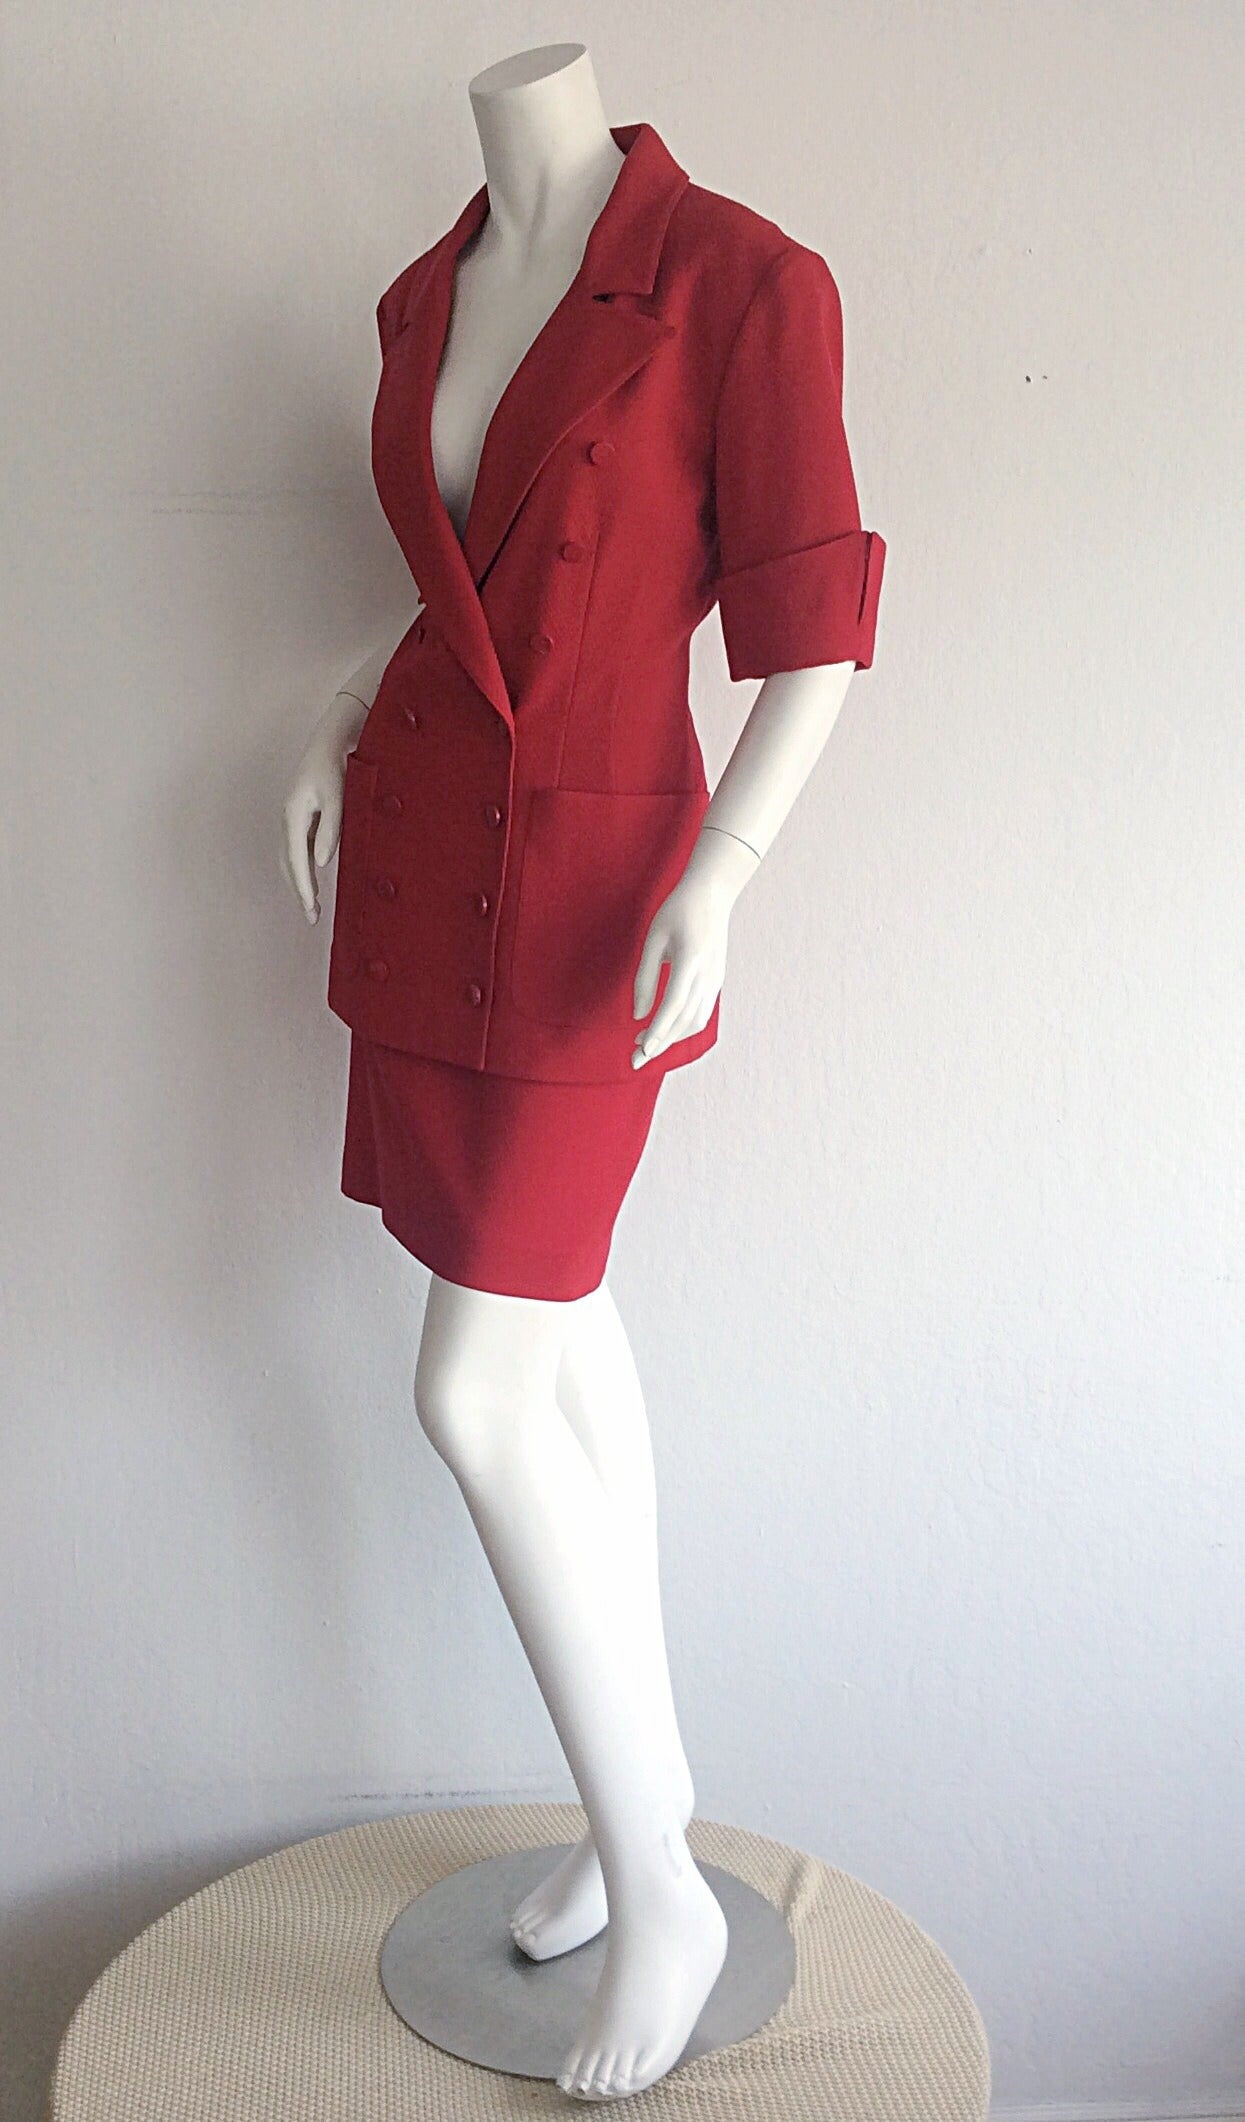 Women's Gorgeous 1990s Vintage Karl Lagerfeld Bright Red Double Breasted Skirt Suit For Sale